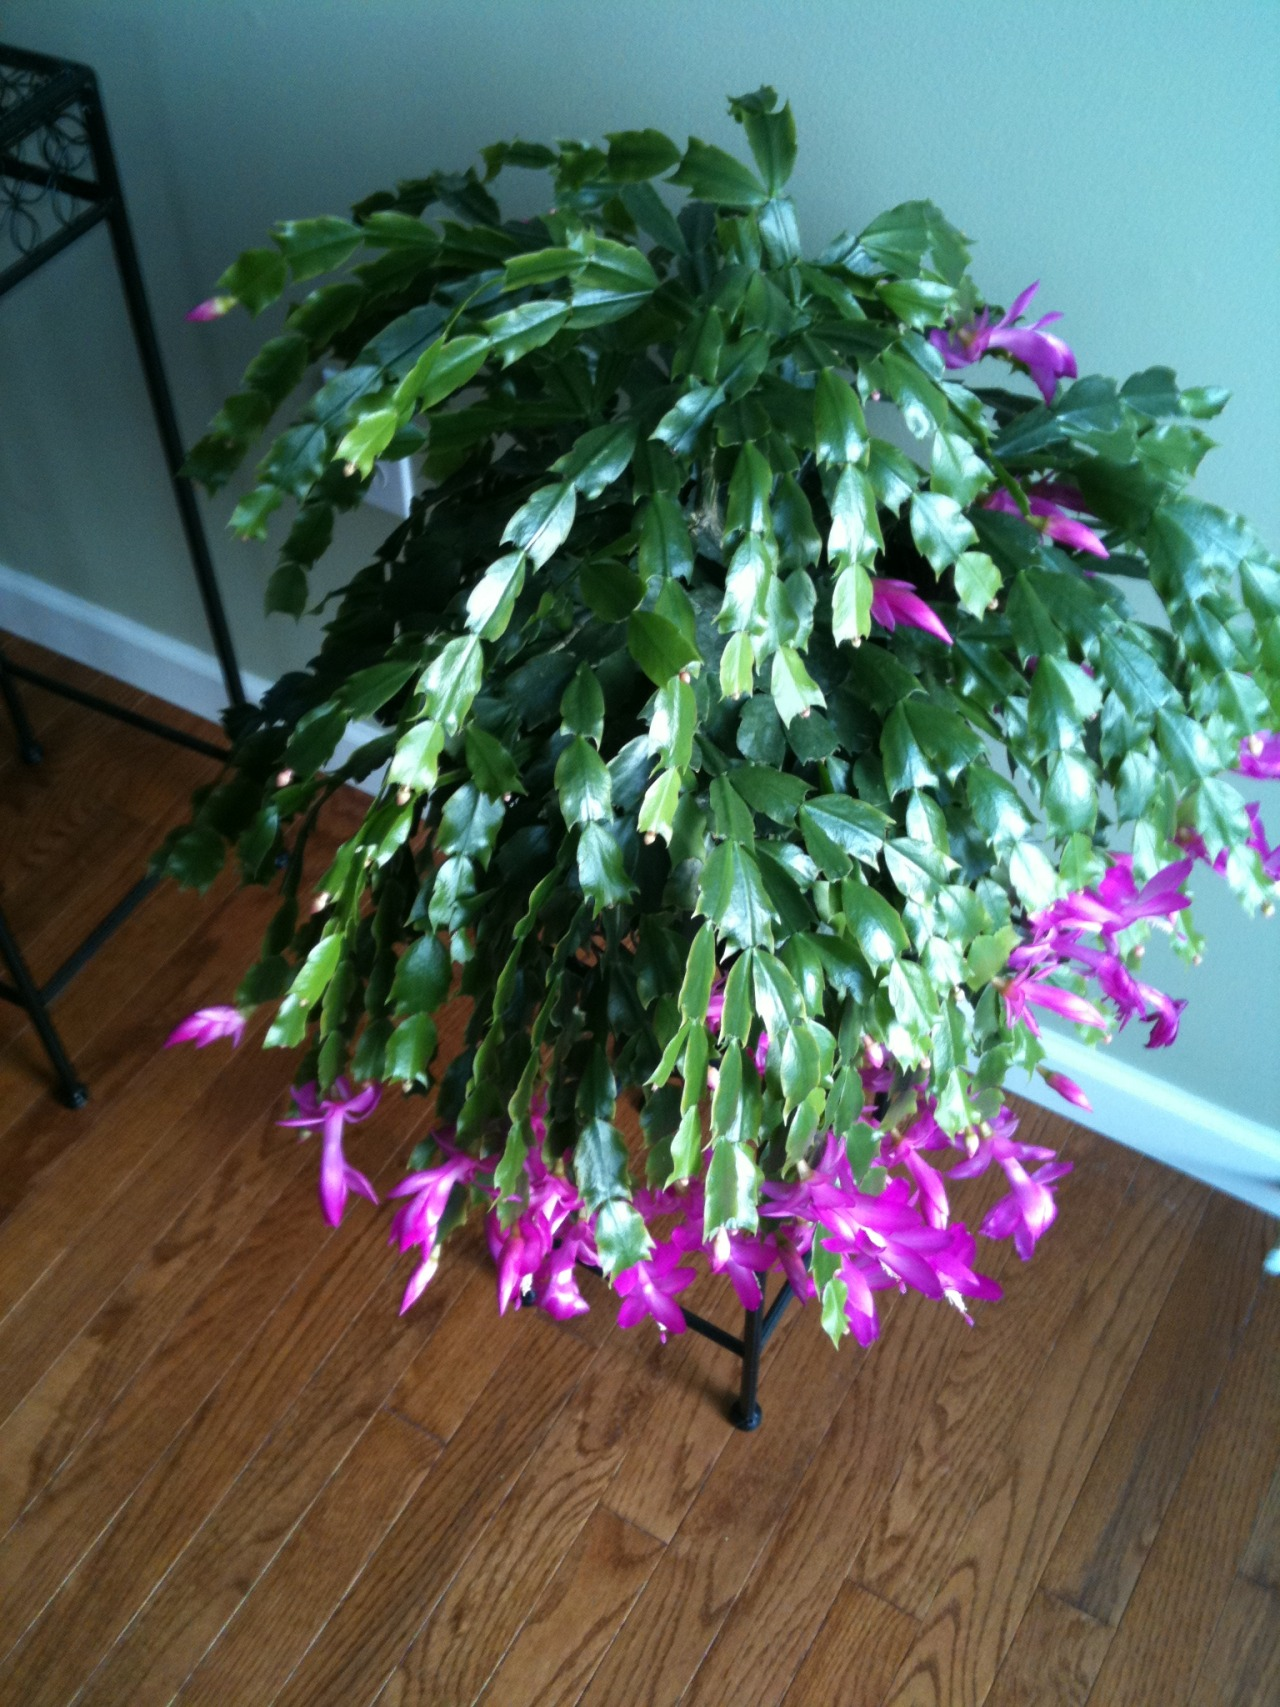 For some reason, the Christmas Cactus from my Dad's funeral has bloomed again in February.  I think he likes what I am doing with the blog as he was another who battled cancer!!  Have a great weekend everyone!